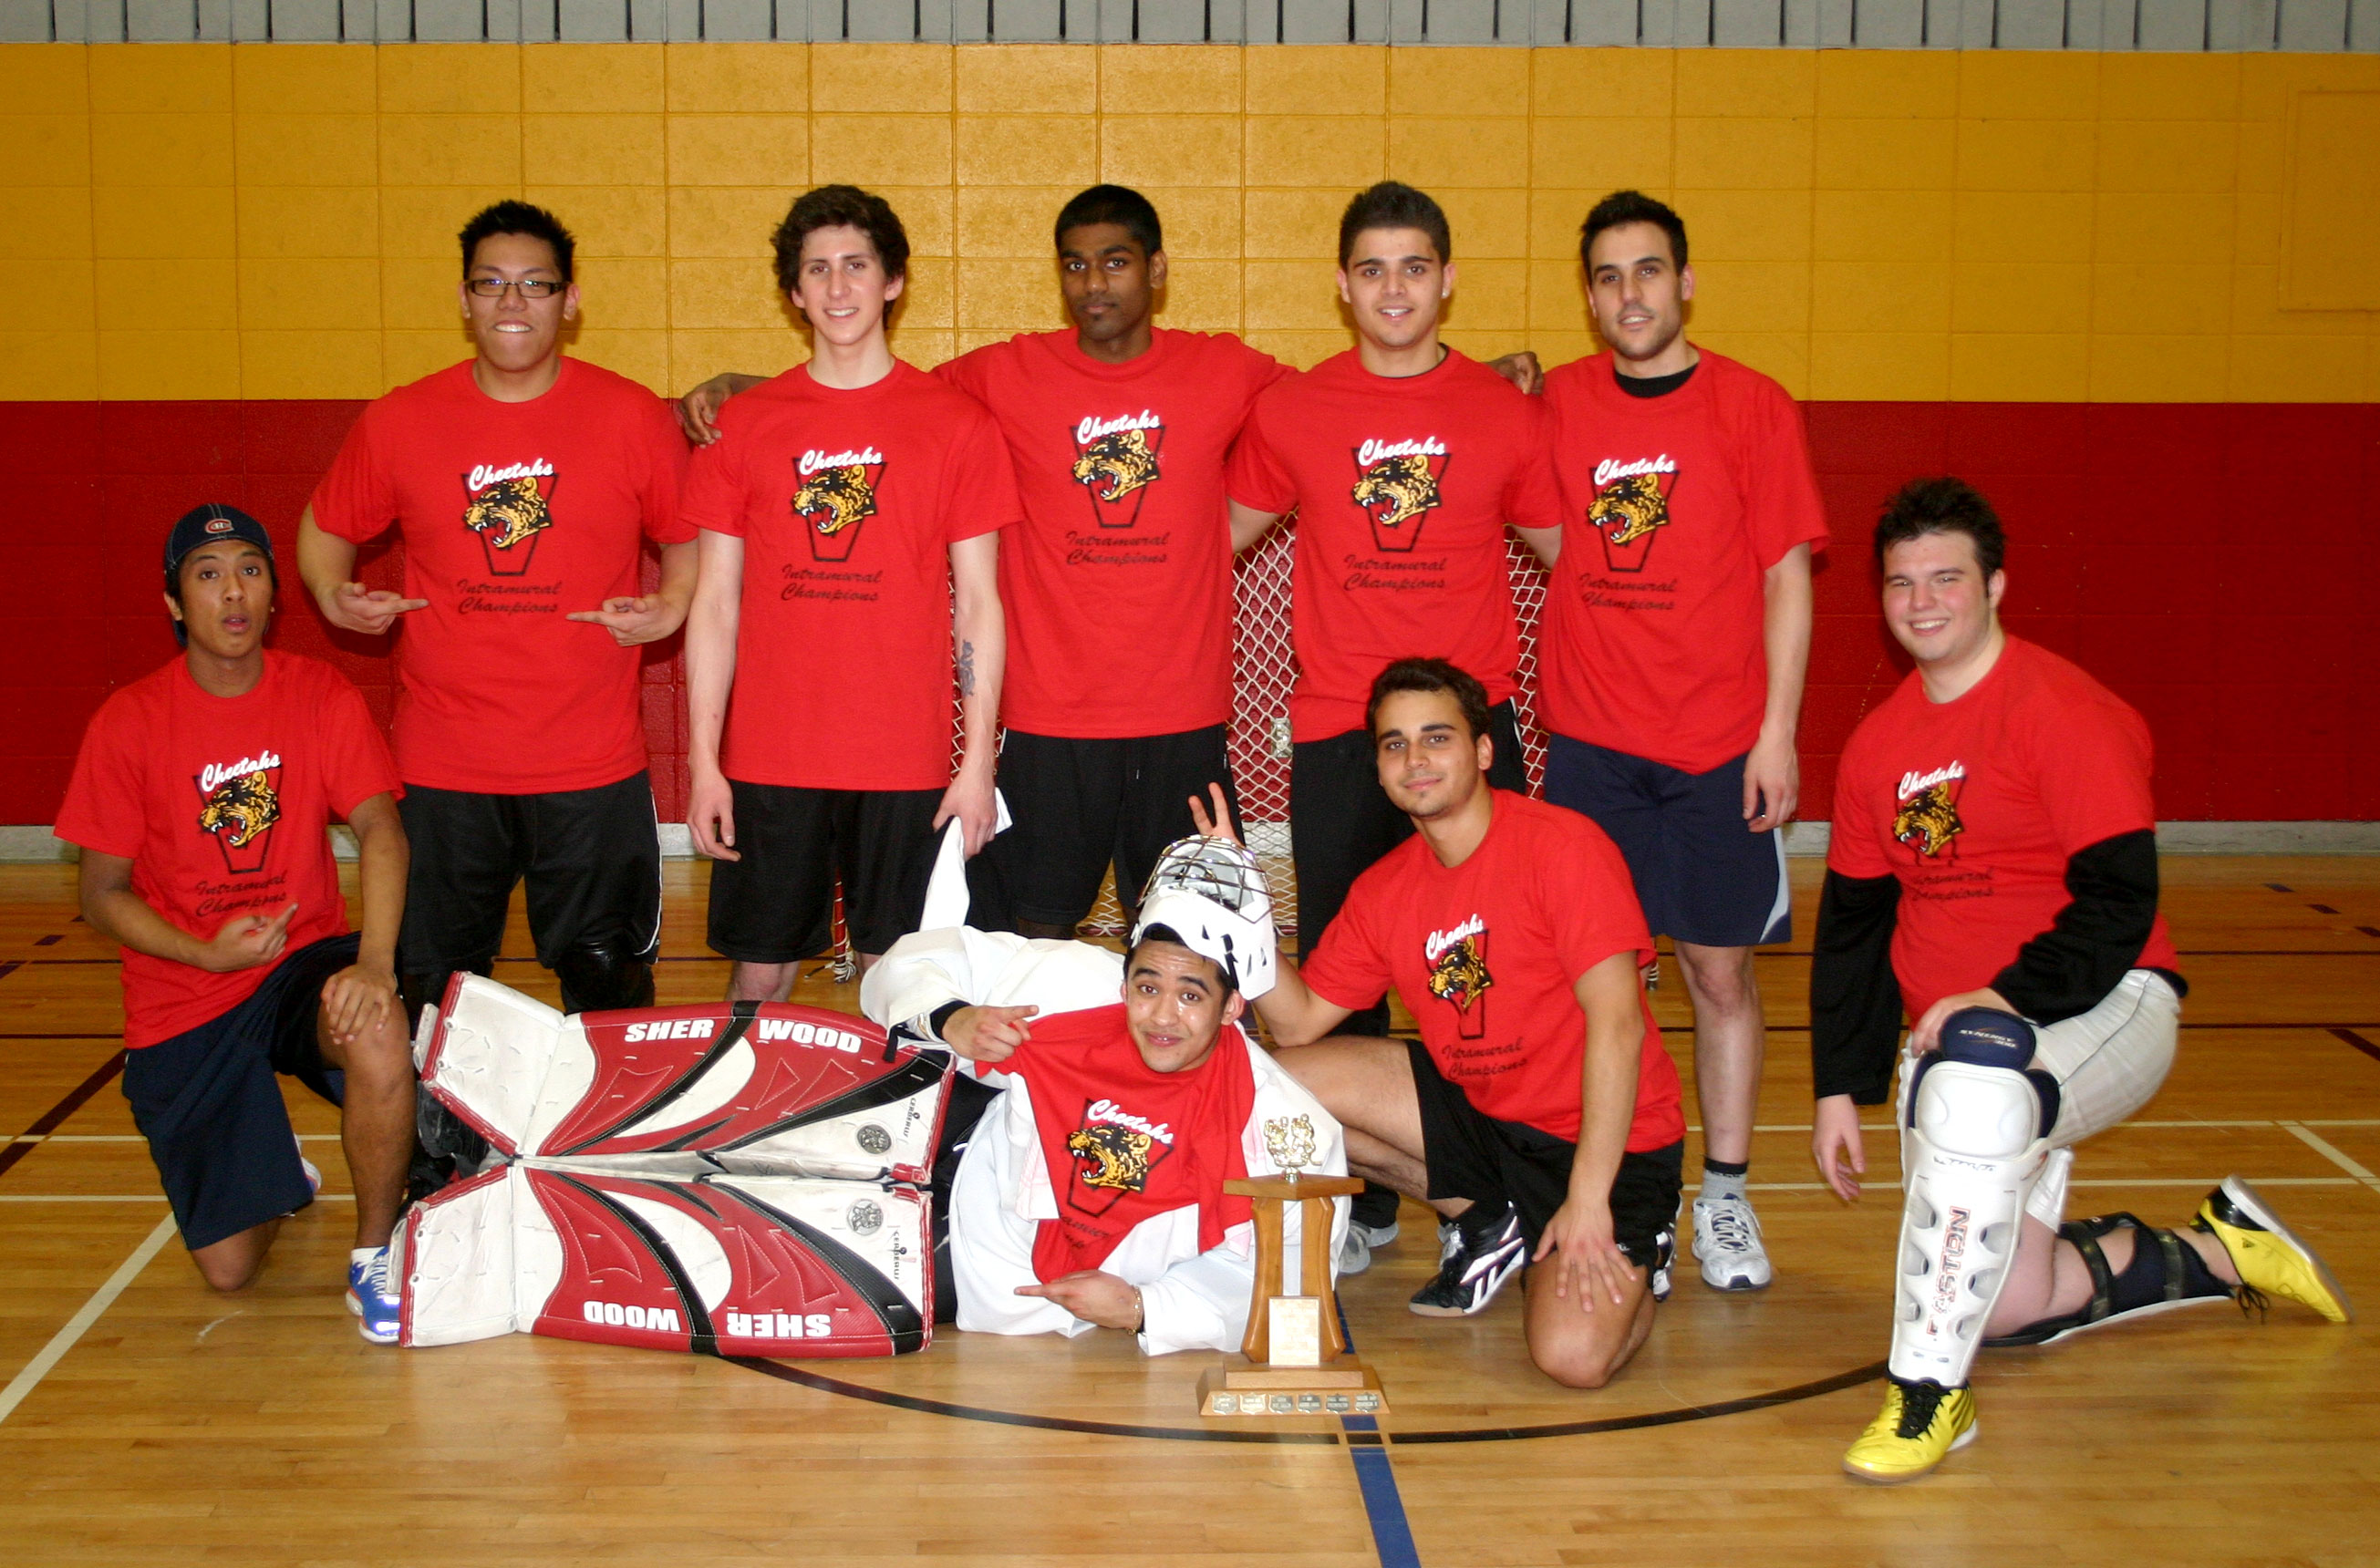 sports club intramural how to play street hockey.